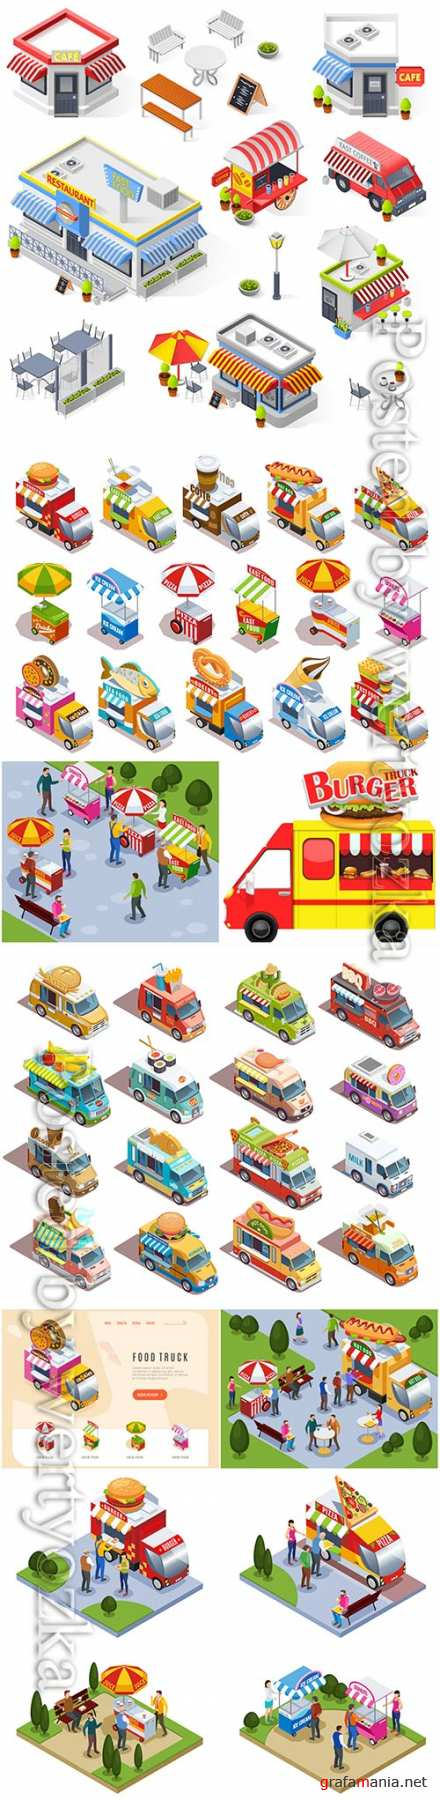 Food trucks and street carts vending fast food drinks and ice cream isometric icons set